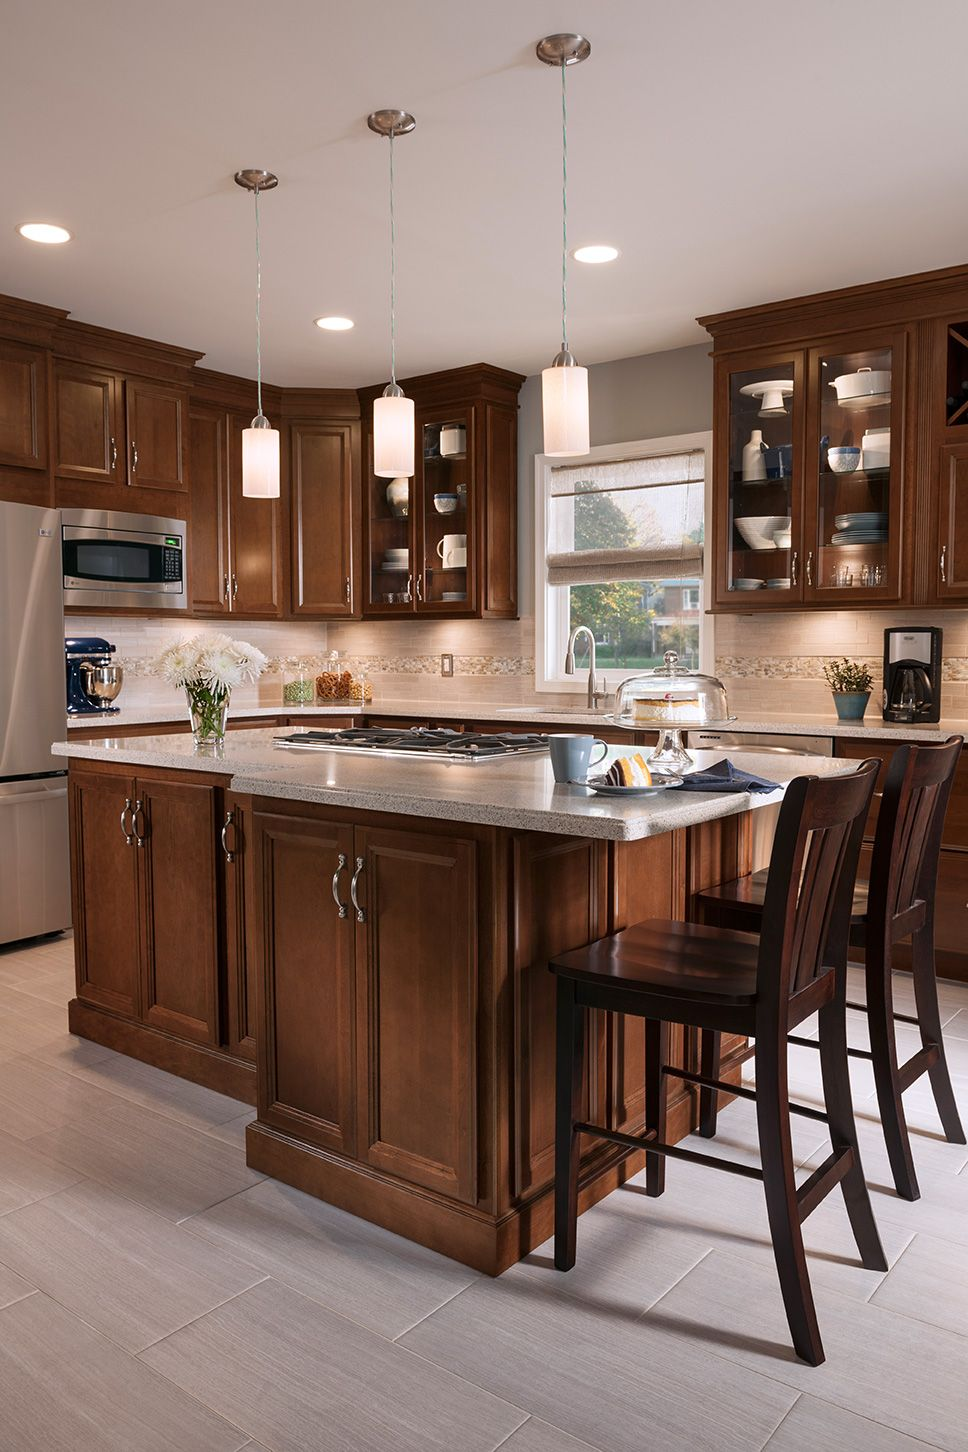 Shenandoah Cabinetry kitchen in Dominion Cherry Chocolate ...